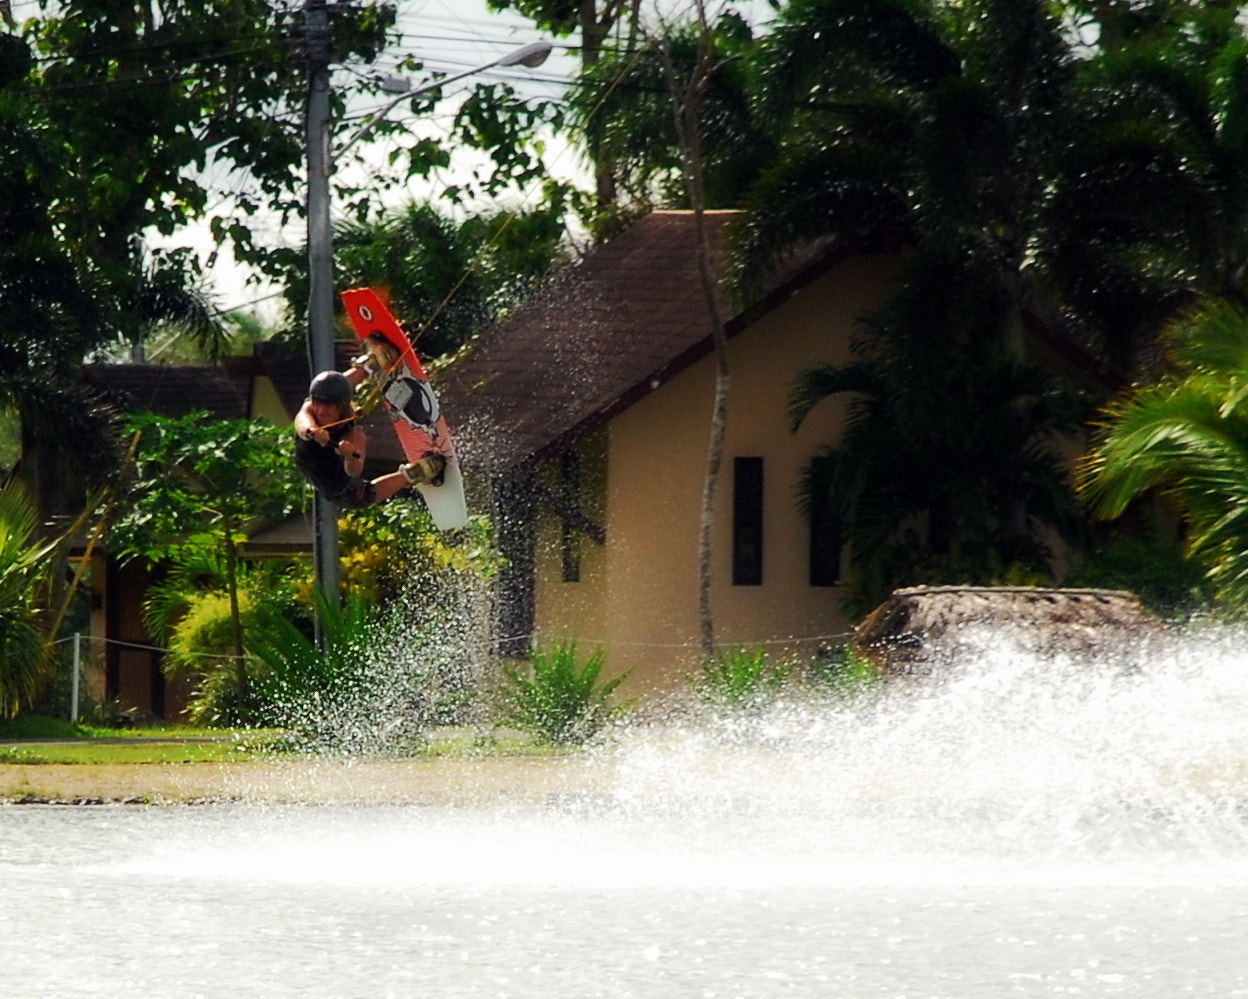 Photograph Wakeboarding2 by Mirai Borra on 500px